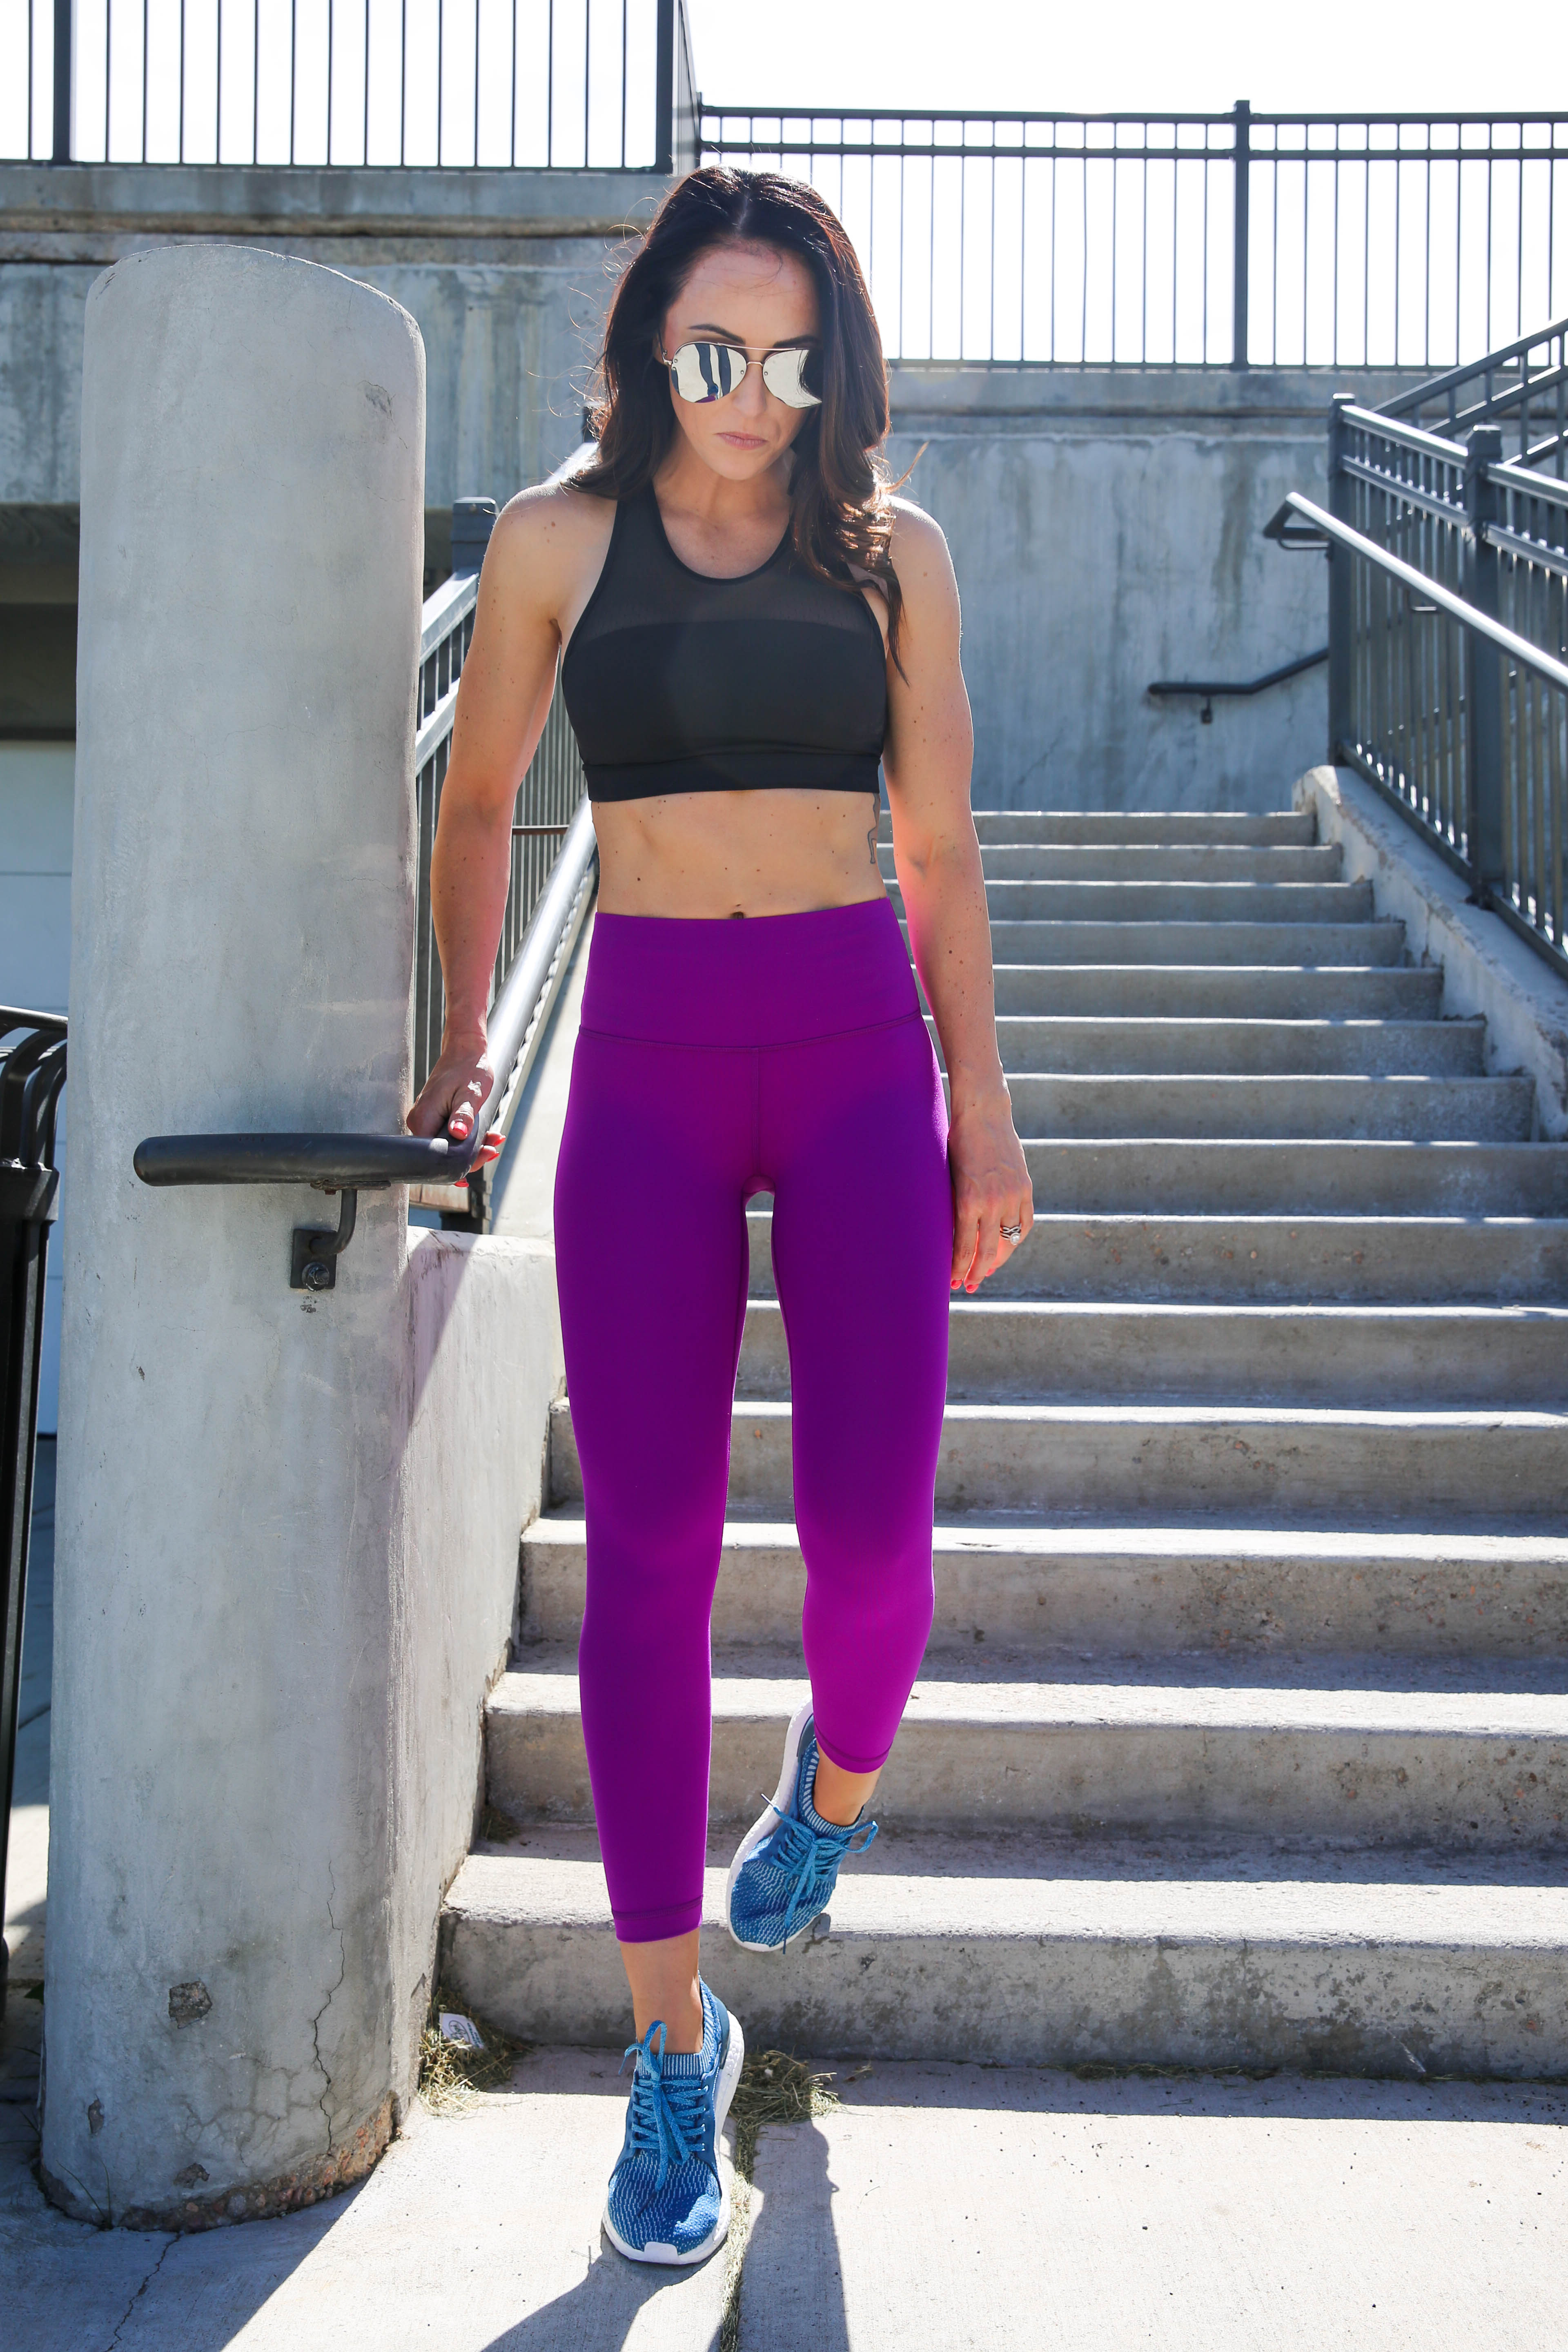 PaleOMG - Reevaluating Your Fitness Goals & Looking Good at Every Step Along the Way